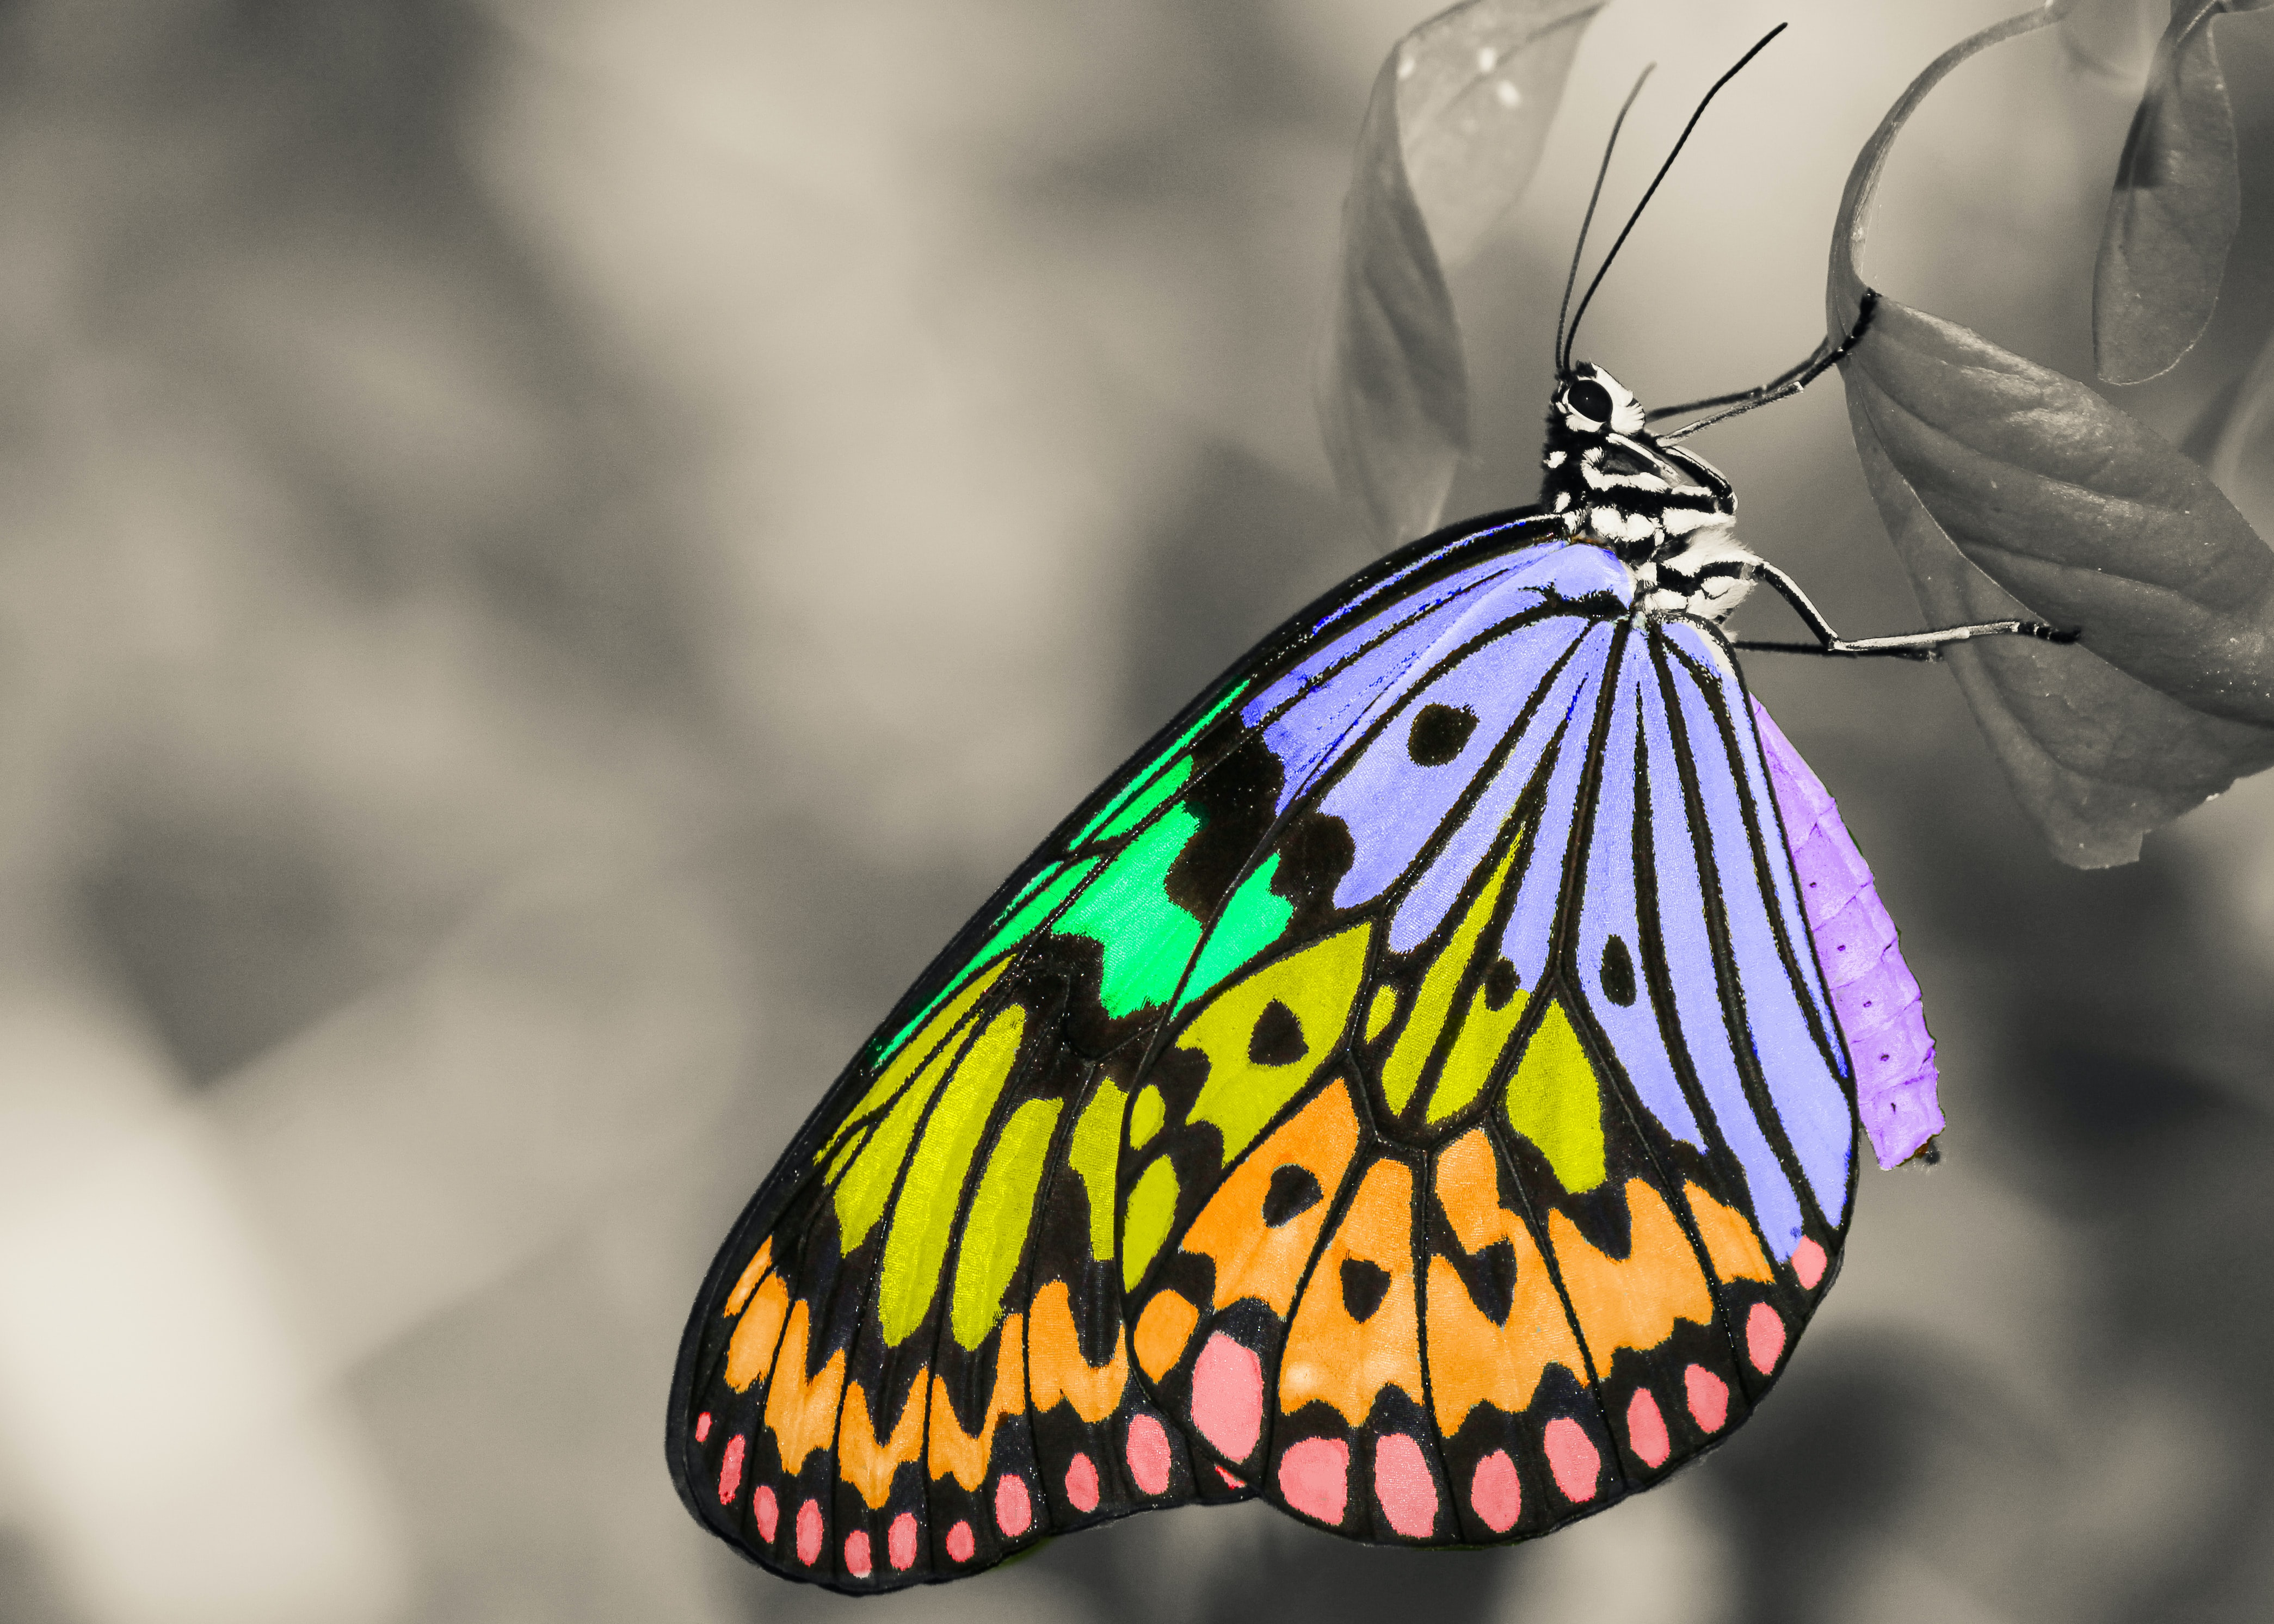 A colorful butterfly on a leaf, with a gray blurred background.